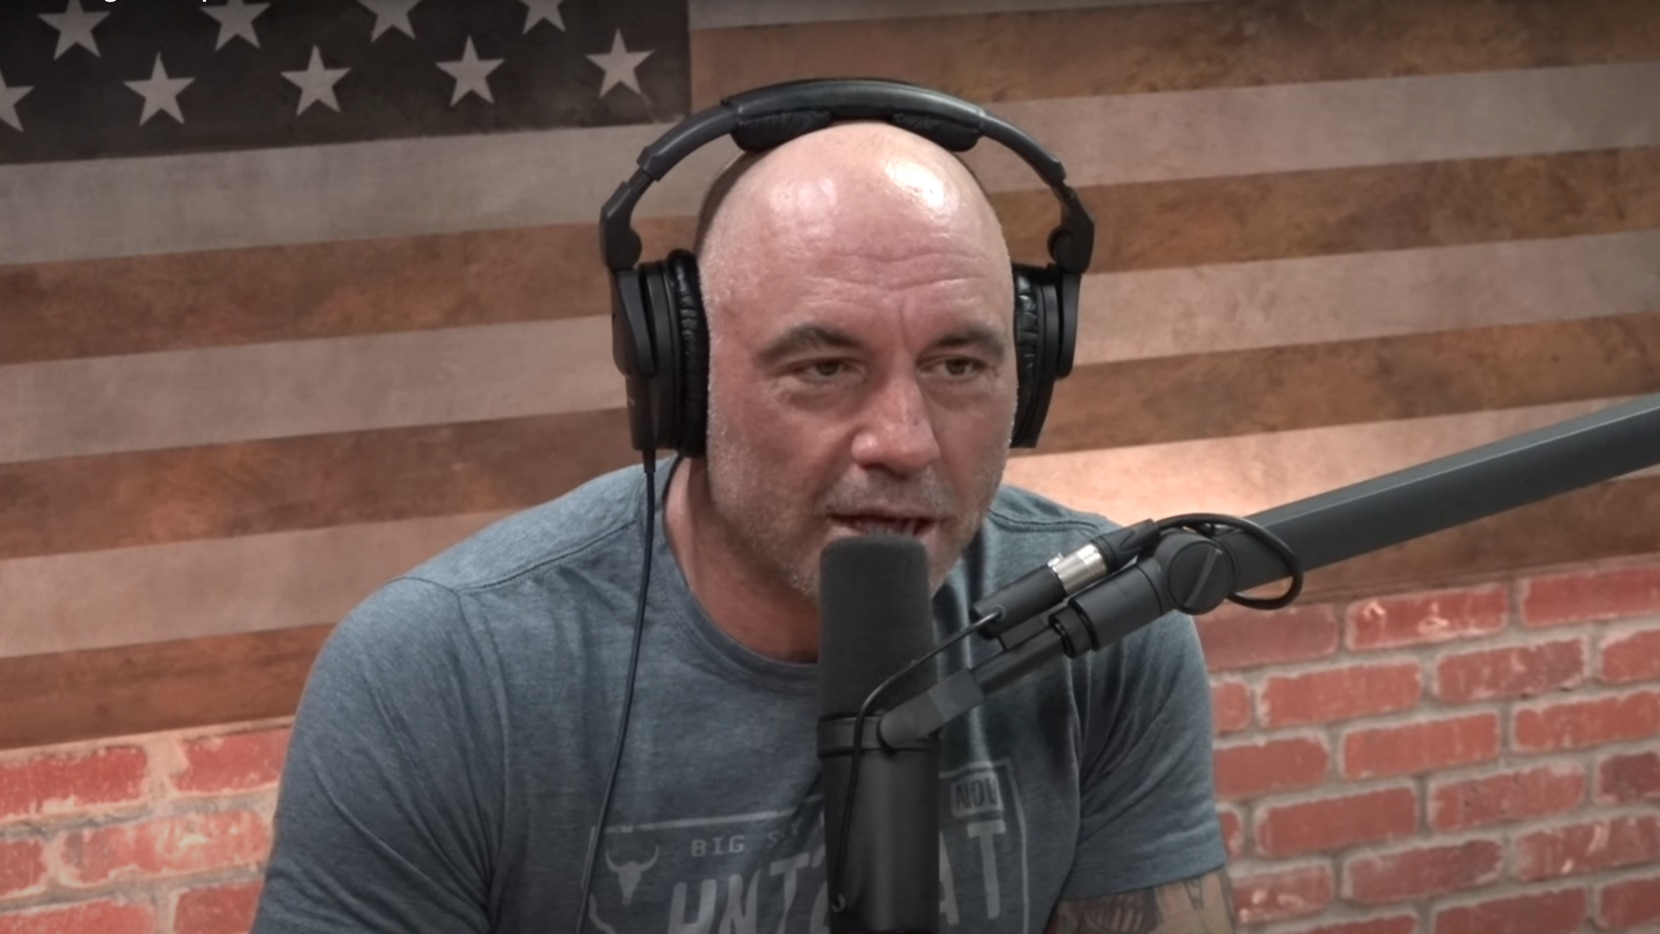 Joe Rogan interviews Joe de Sena on his podcast The Joe Rogan Experience.